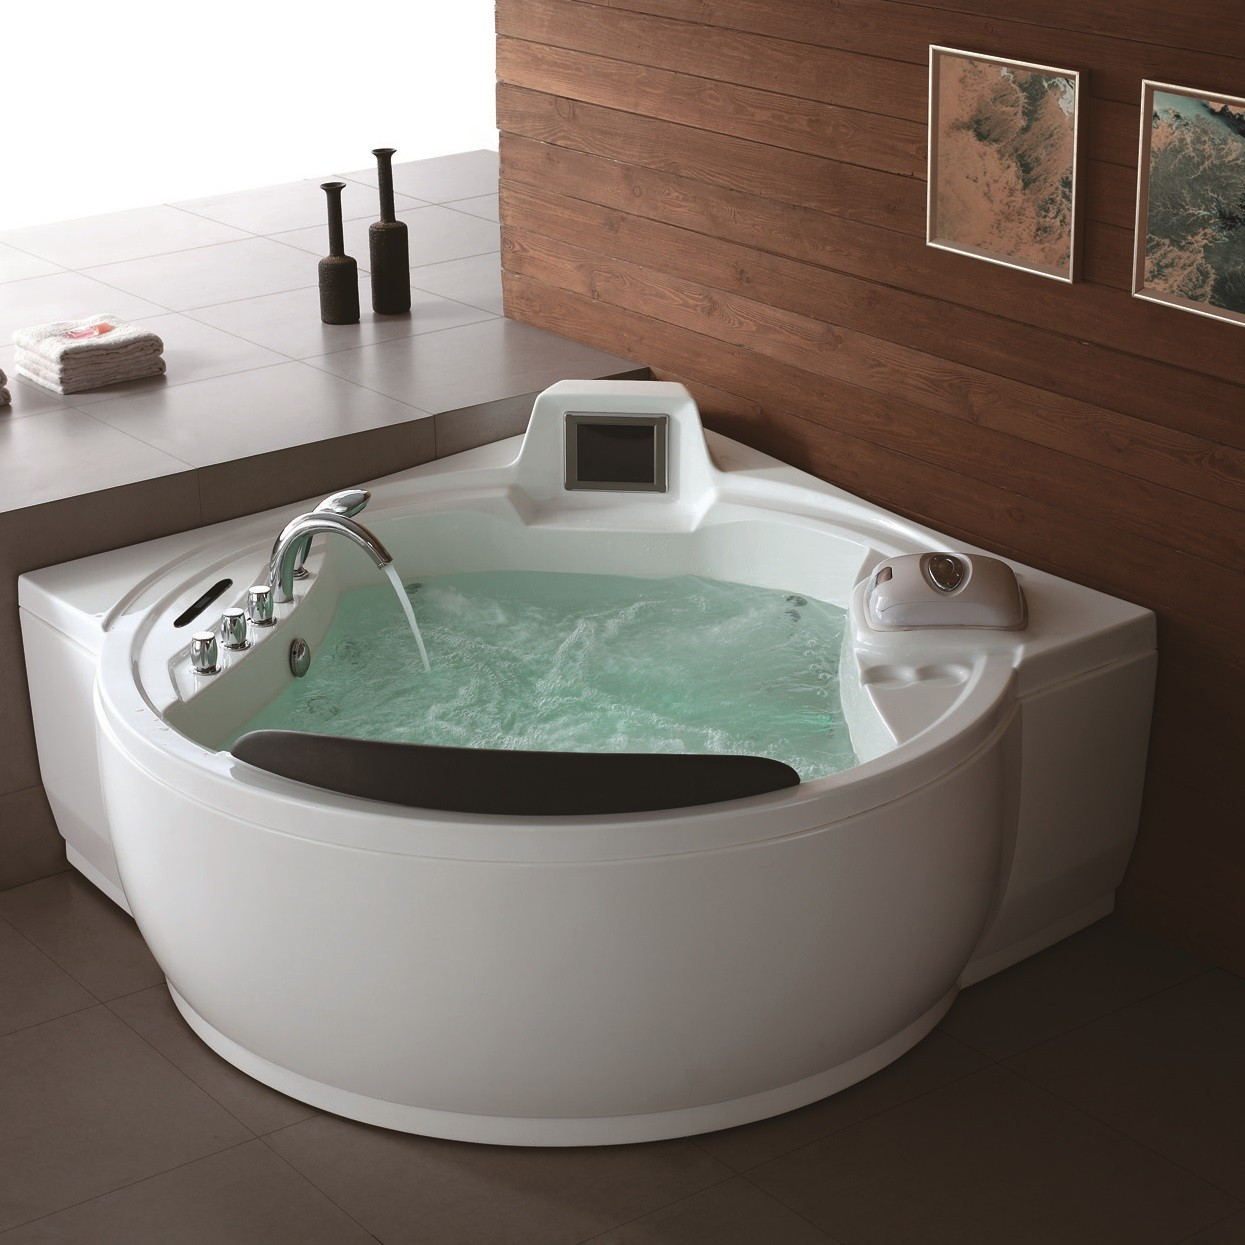 whirlpool tub. Freeport Luxury Whirlpool Tub